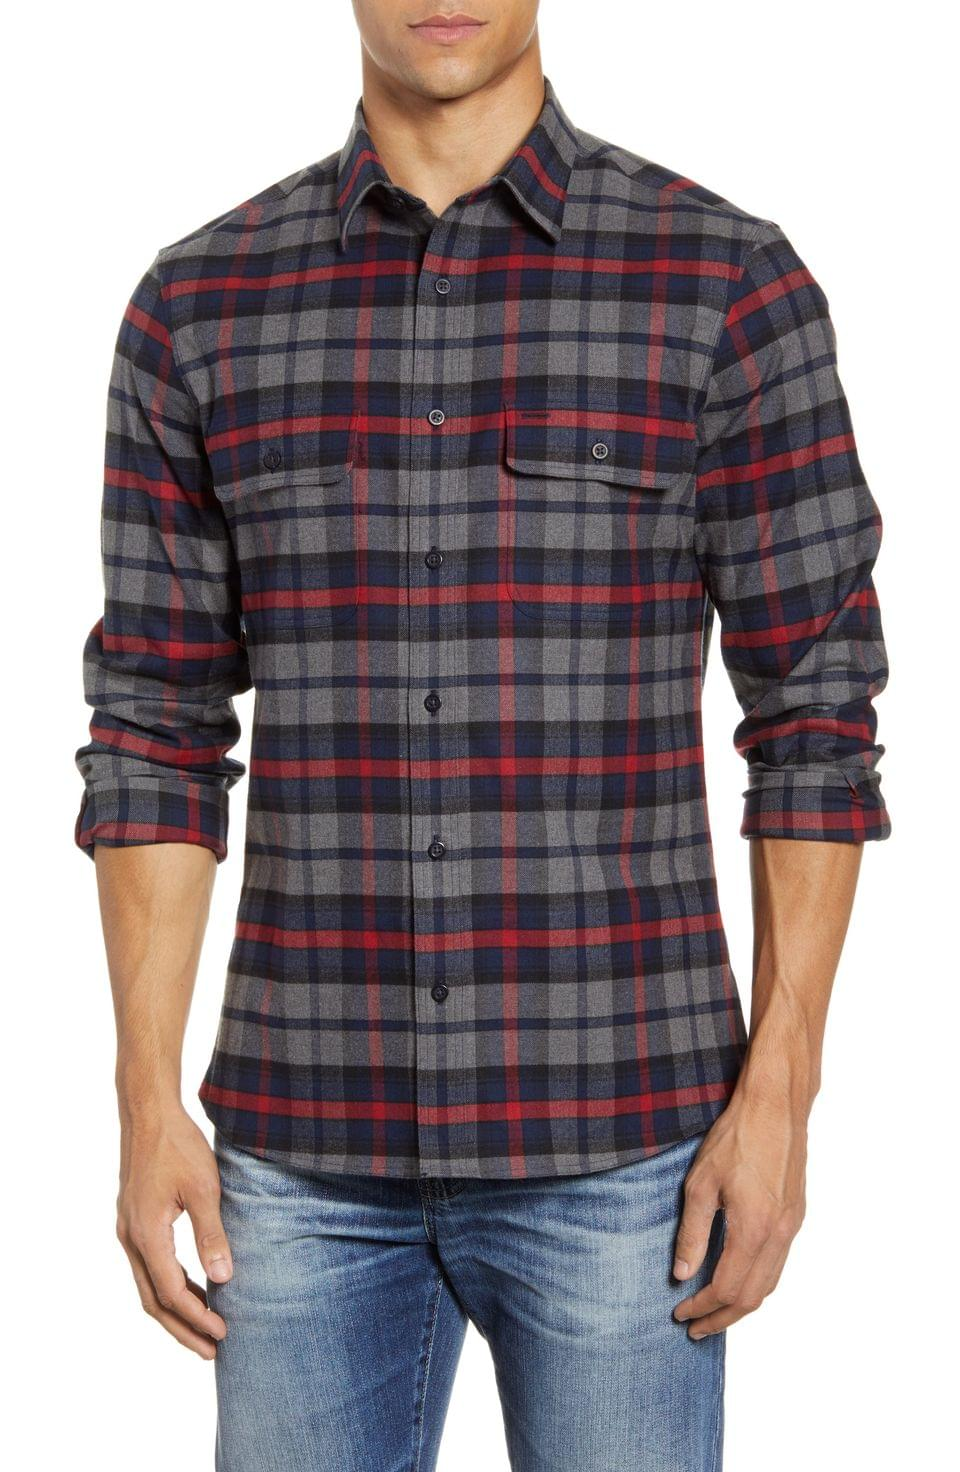 Men's Nordstrom Men's Shop Trim Fit Plaid Flannel Button-Up Shirt